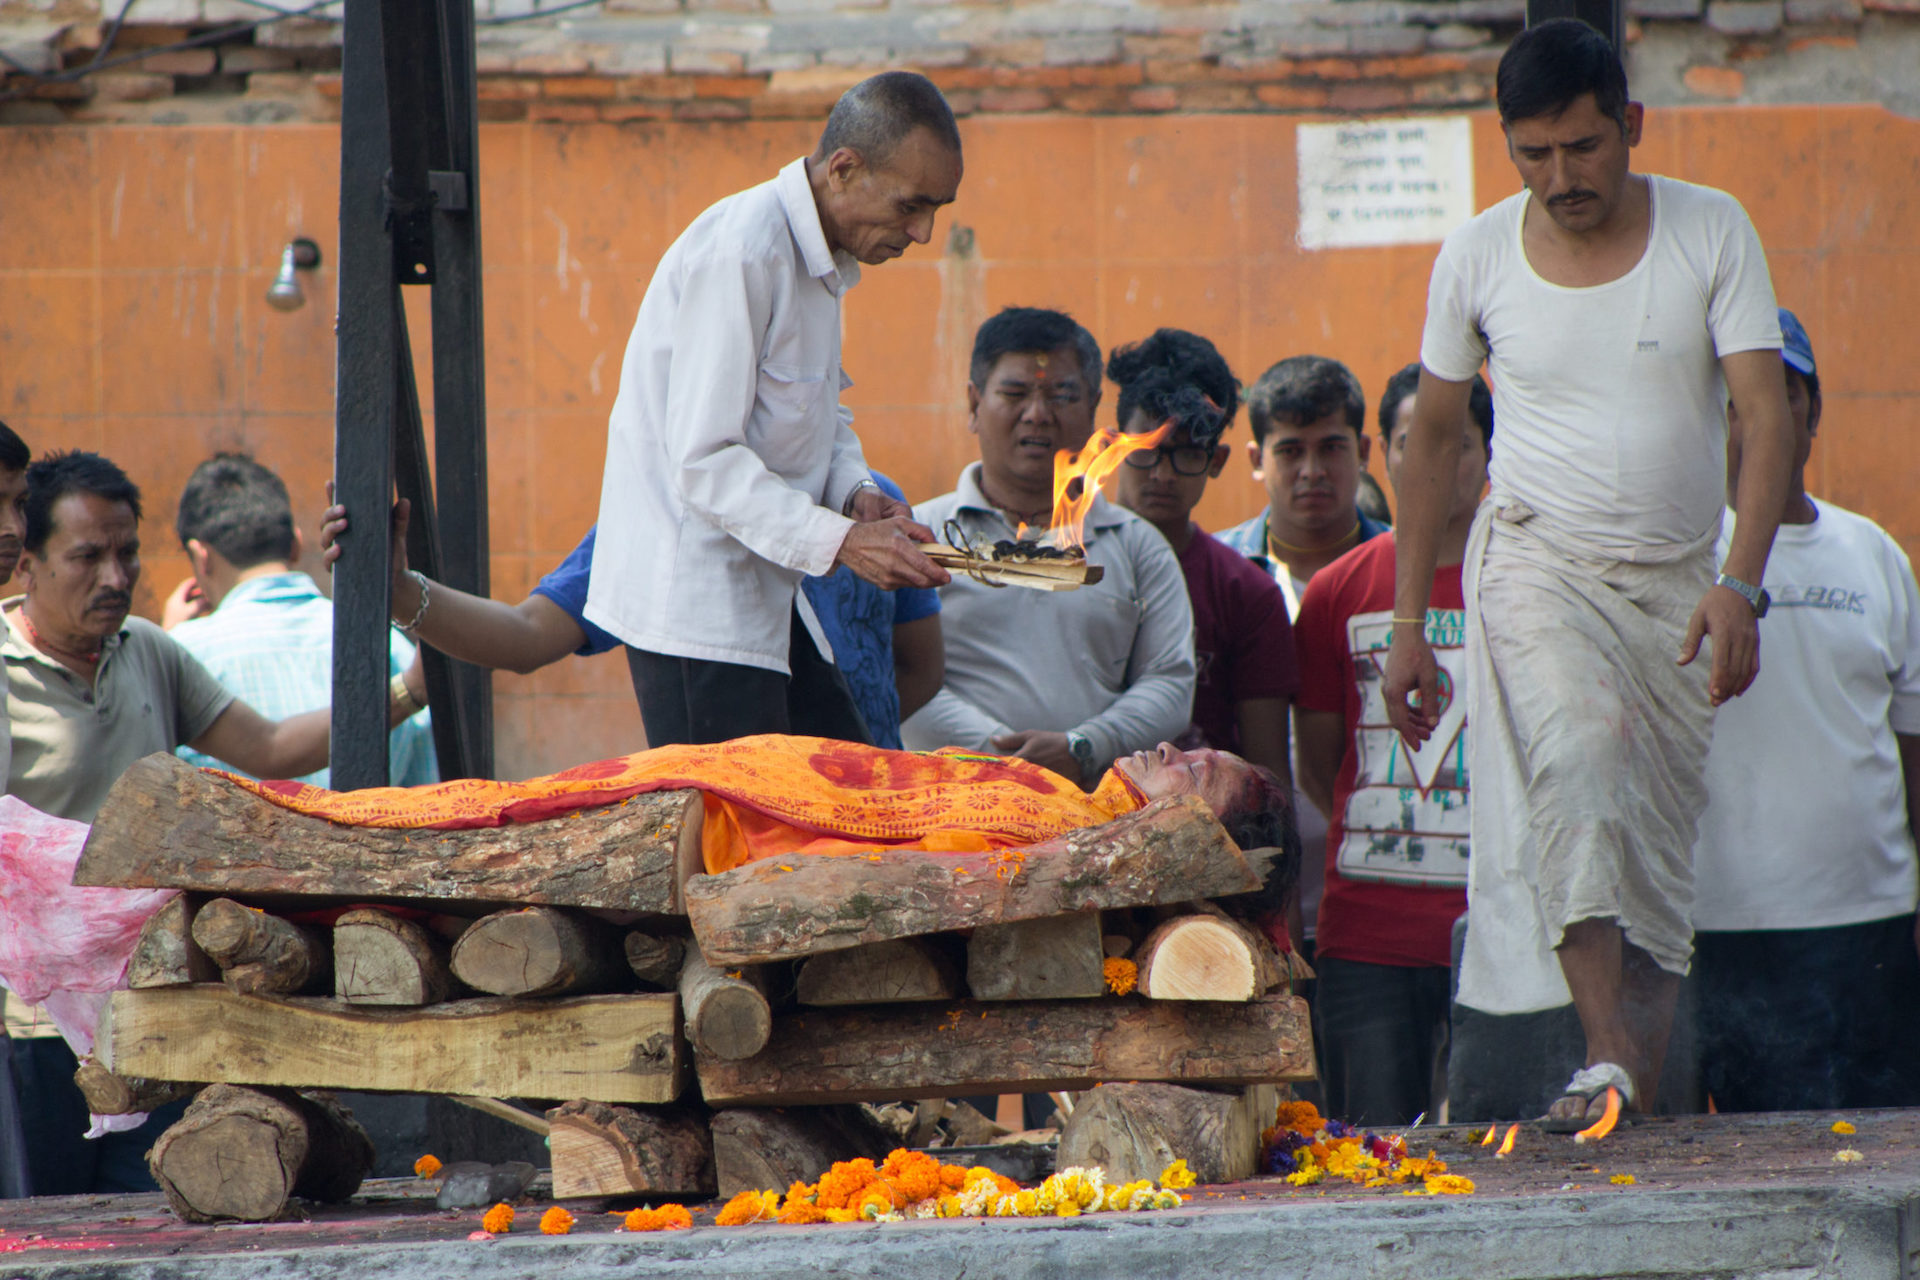 A man prepares to light a cremation pyre on fire at Pashupatinath Temple in Kathmandu, Nepal. Photo from the IMB Photo Library.